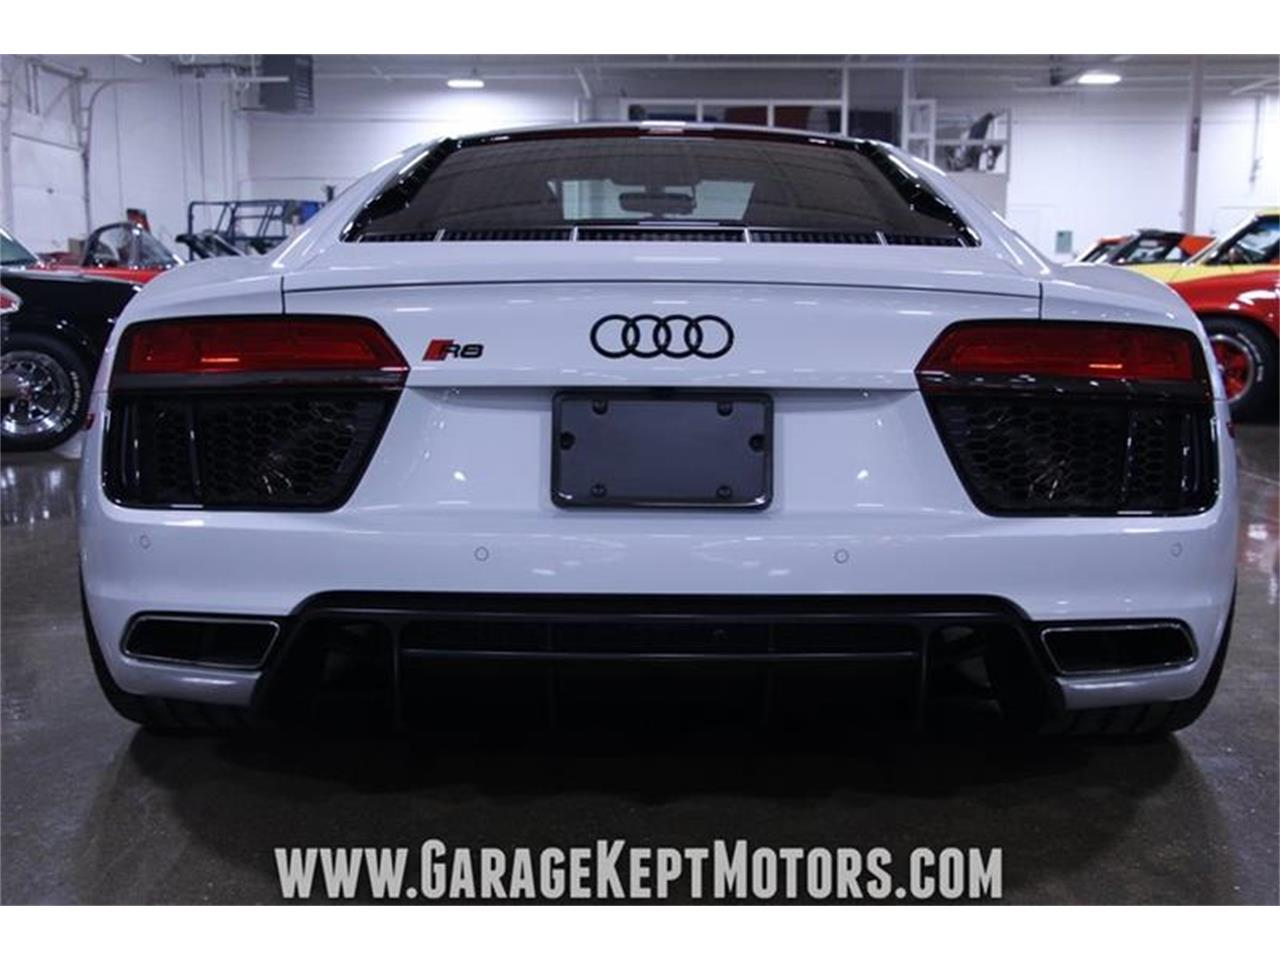 Large Picture of '17 R8 located in Grand Rapids Michigan - $149,900.00 - QBYC